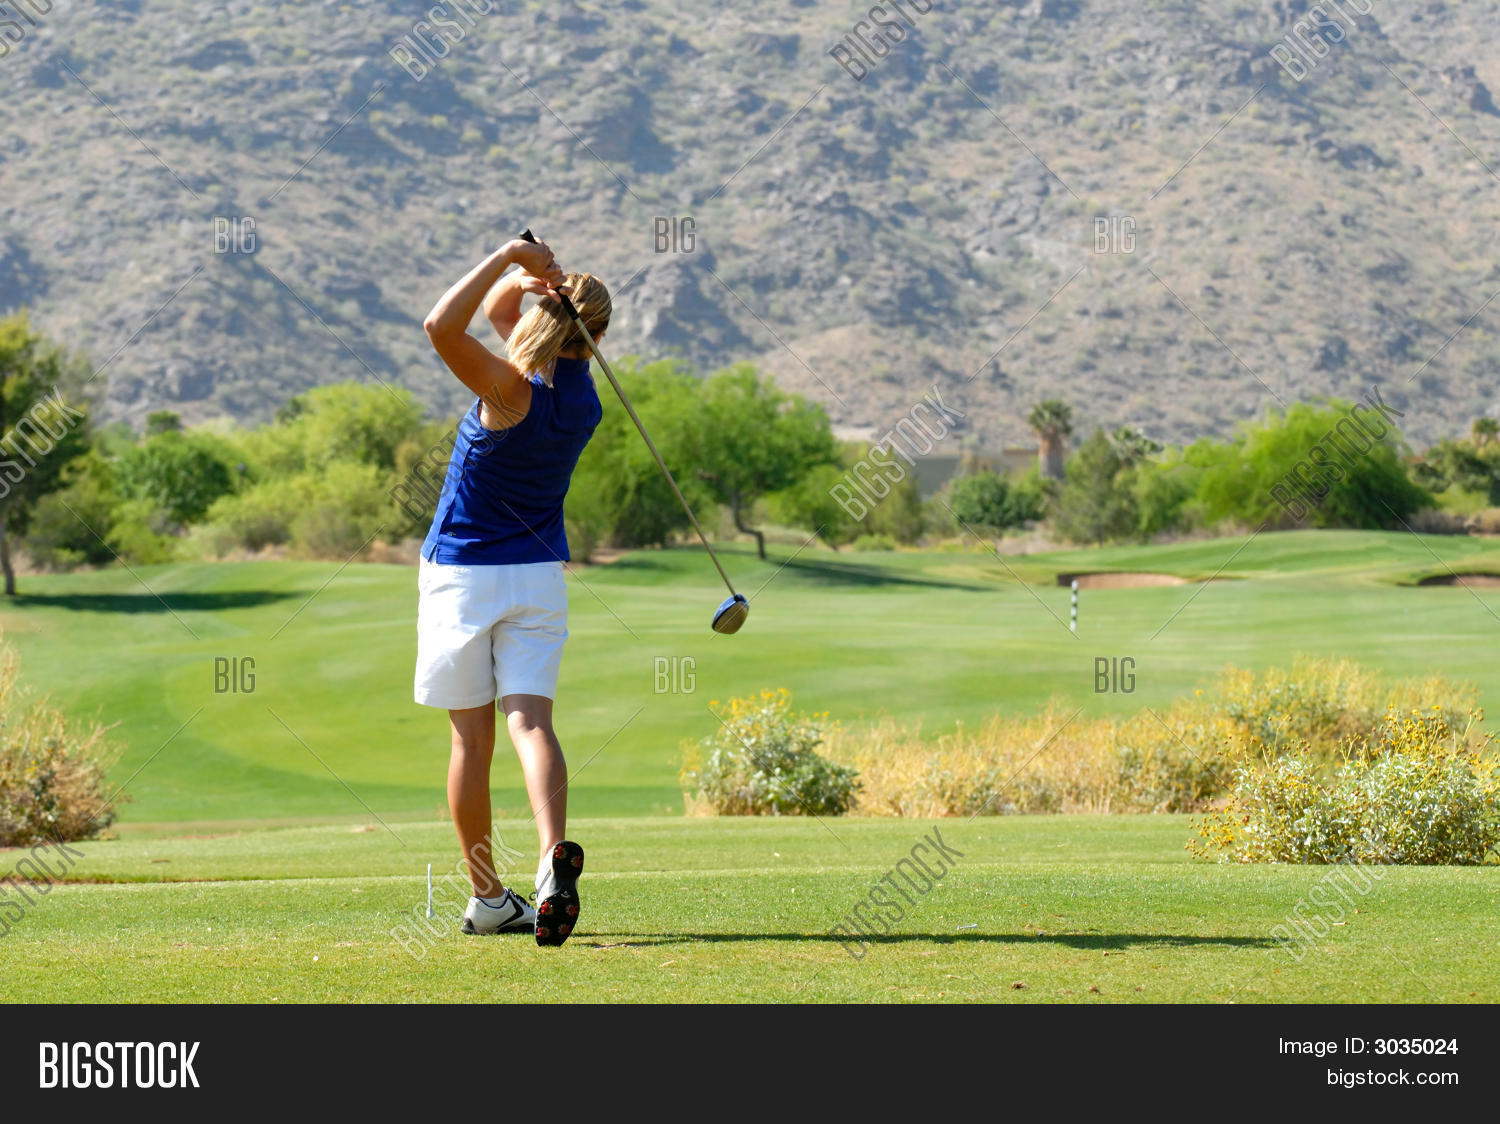 active,adult,amateur,ball,caucasian,challenge,club,compete,competing,competition,concentration,country,course,daylight,divot,drive,exercise,fairway,fitness,follow,form,fun,girl,golf,golfer,golfing,golf swing,grass,green,hit,hobby,individual,leisure,links,man,one,par,person,play,player,practice,putt,putting,recreation,relax,retire,retirement,rough,score,senior,single,sport,swing,tee,vacation,weather,woman